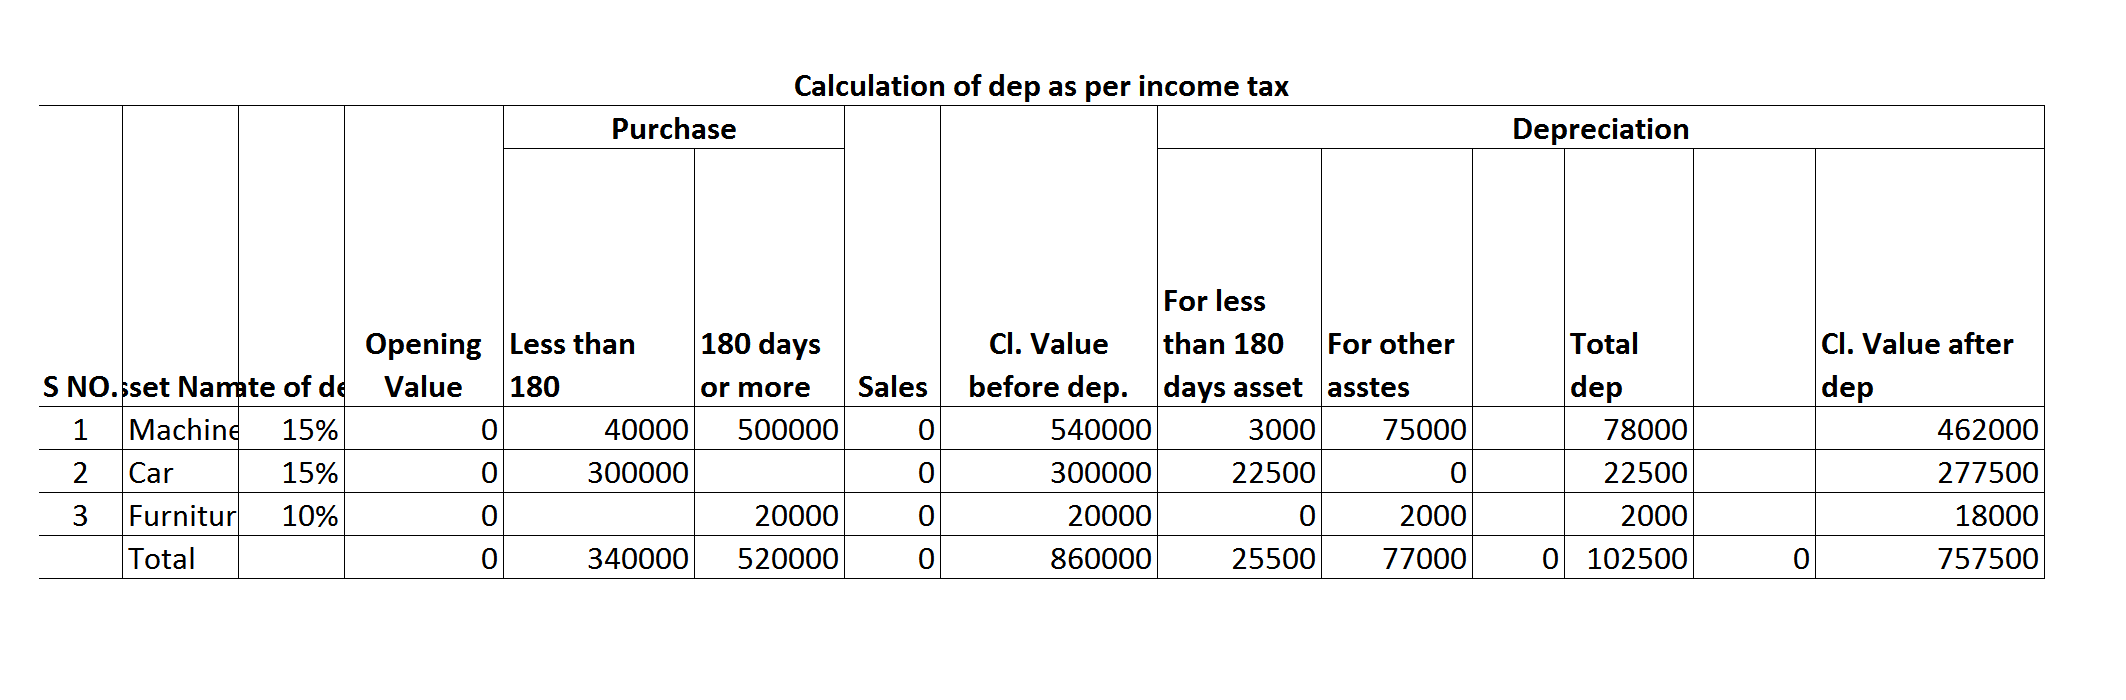 Depreciation  as per Income Tax - Calculating Depreiciation